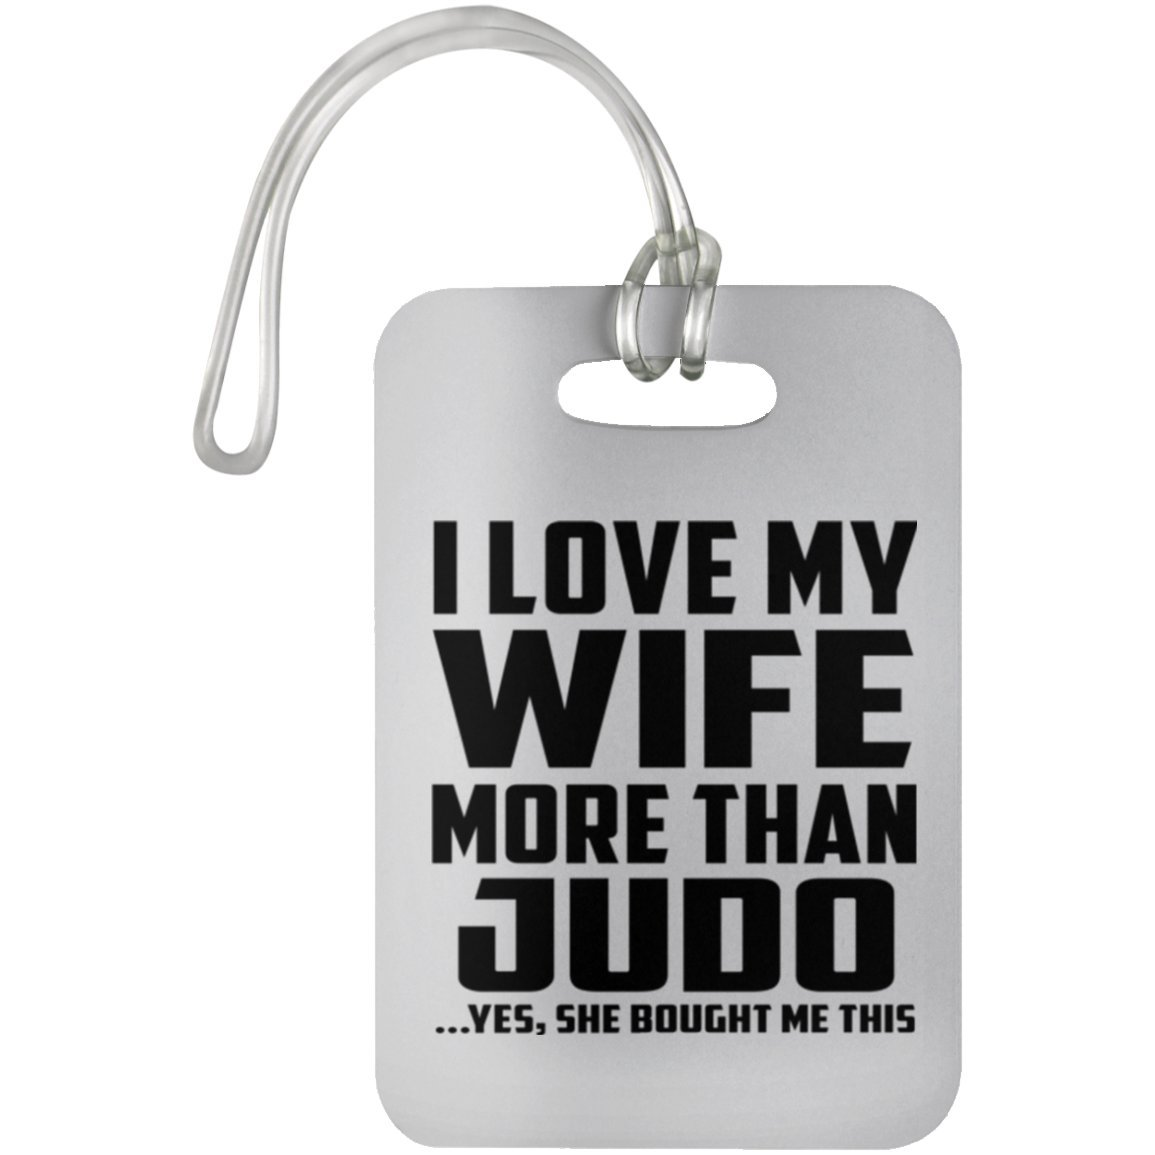 Husband Luggage Tag I Love My Wife More Than Judo .Yes, She Bought Me This - Luggage Tag Travel Cruise Suitcase Bag-gage Tag Best Gift for Husband, Him, Men, Man from Wife Designsify